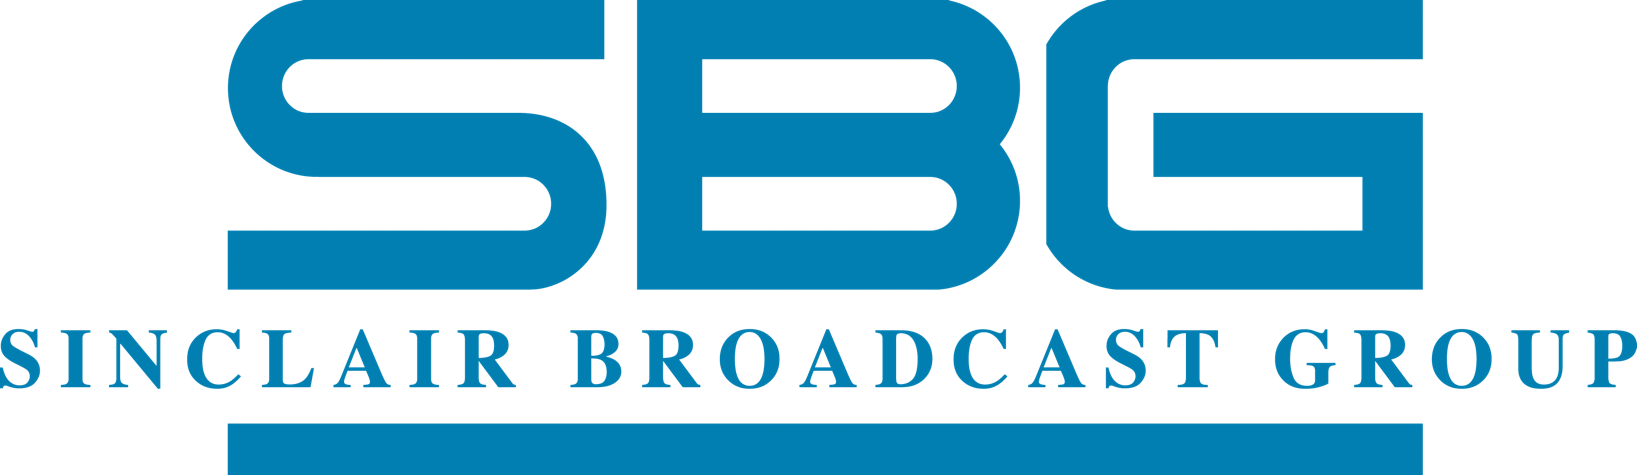 Sinclair Broadcast Group, Inc